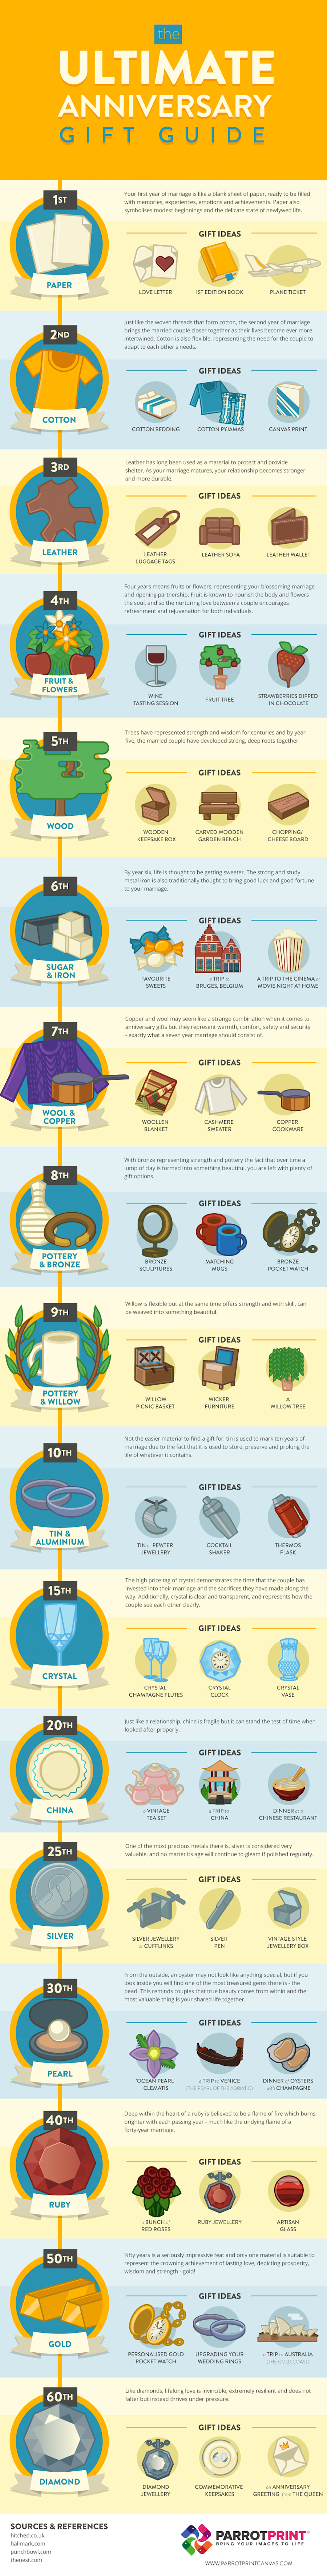 a guide to traditional anniversary gifts and modern alternatives